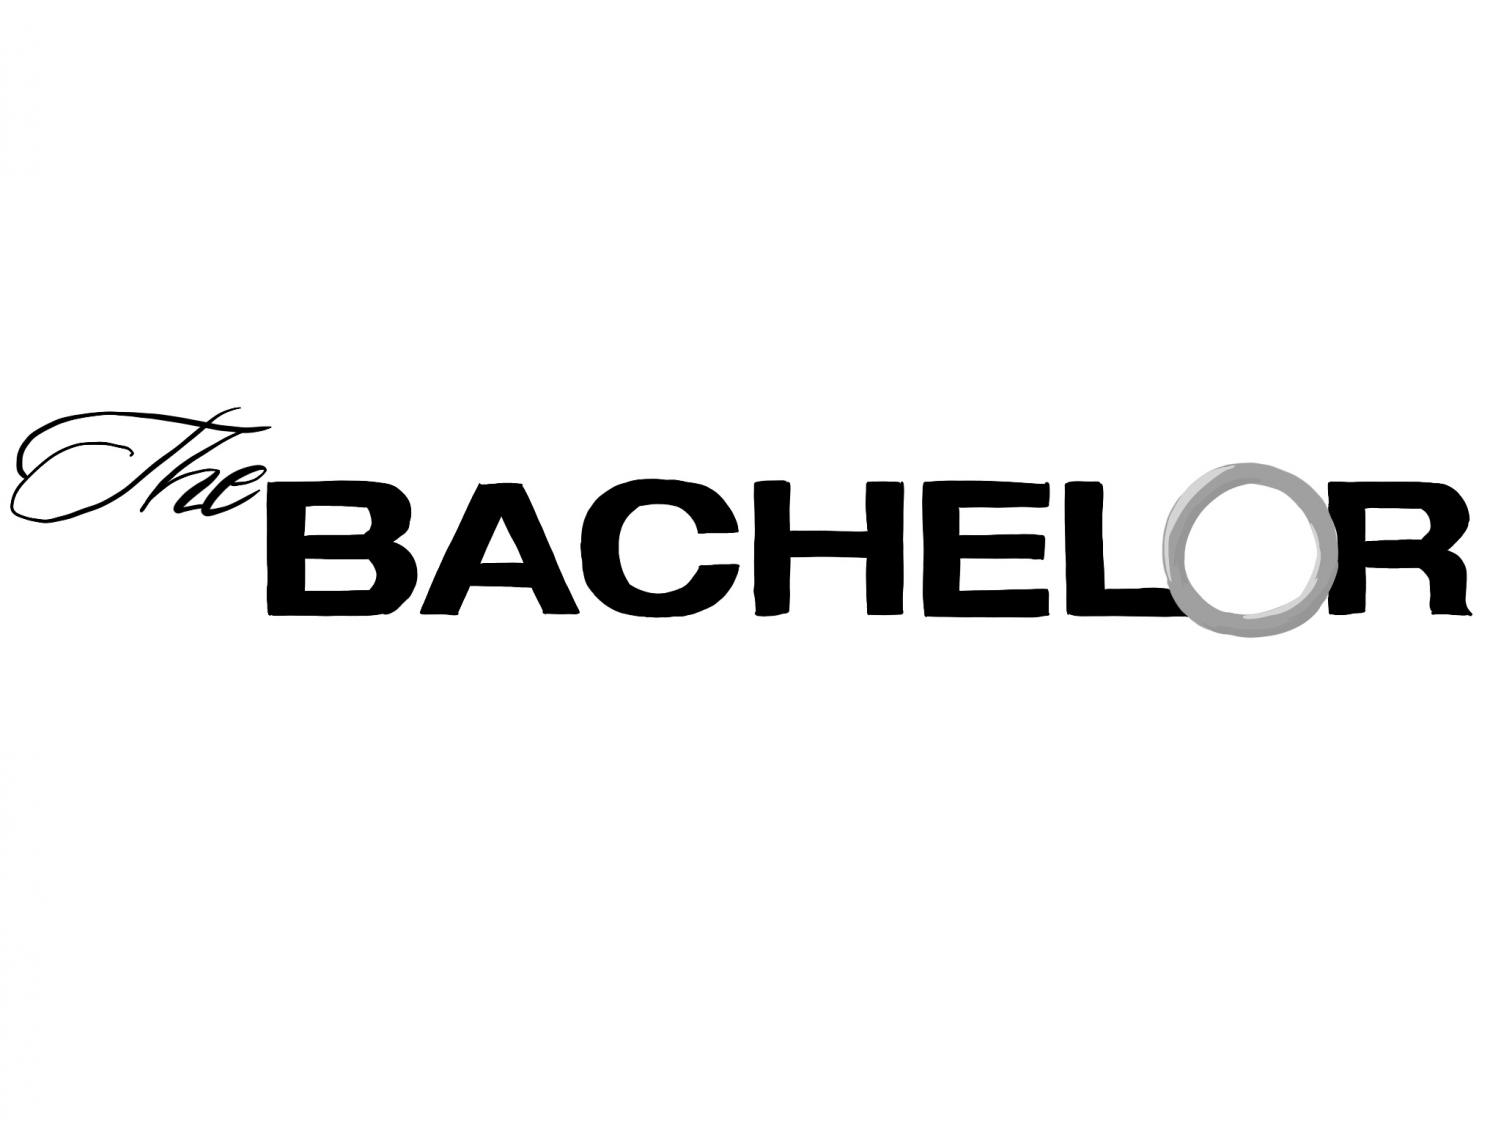 The Bachelor is currently airing on ABC every Monday night.